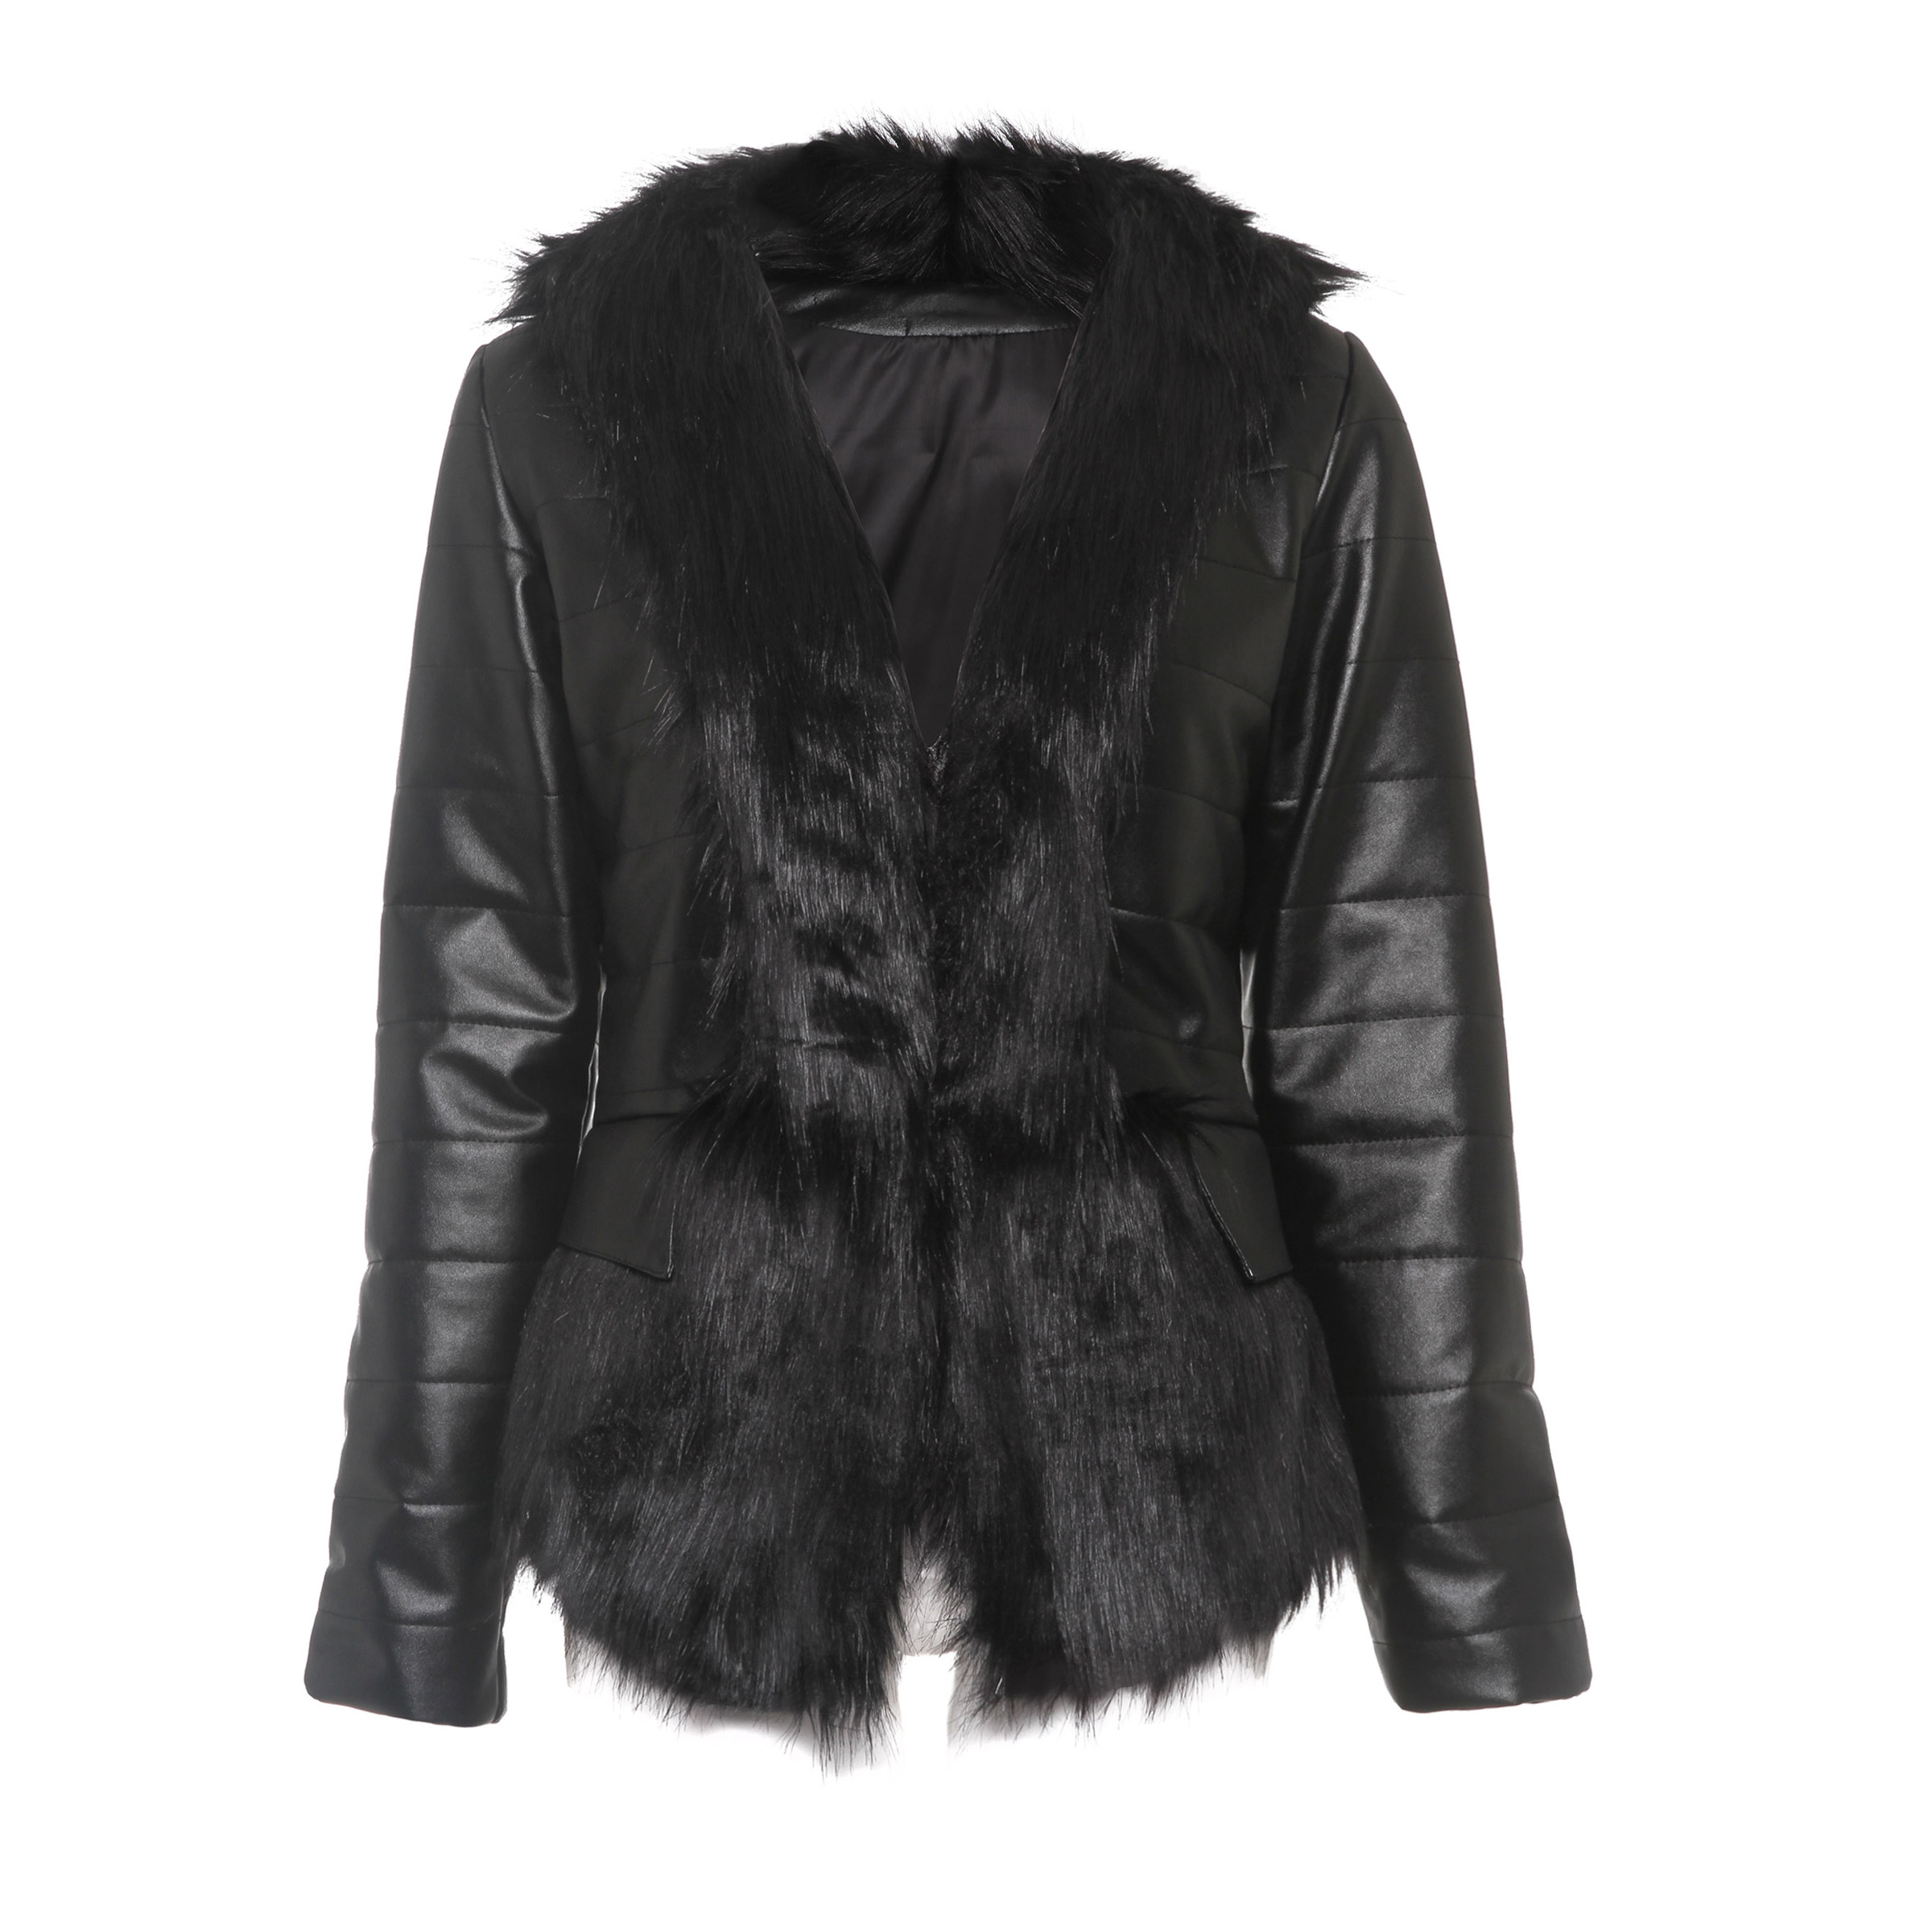 Jacket Female Faux-Leather Womens Outwear Thickening Cotton